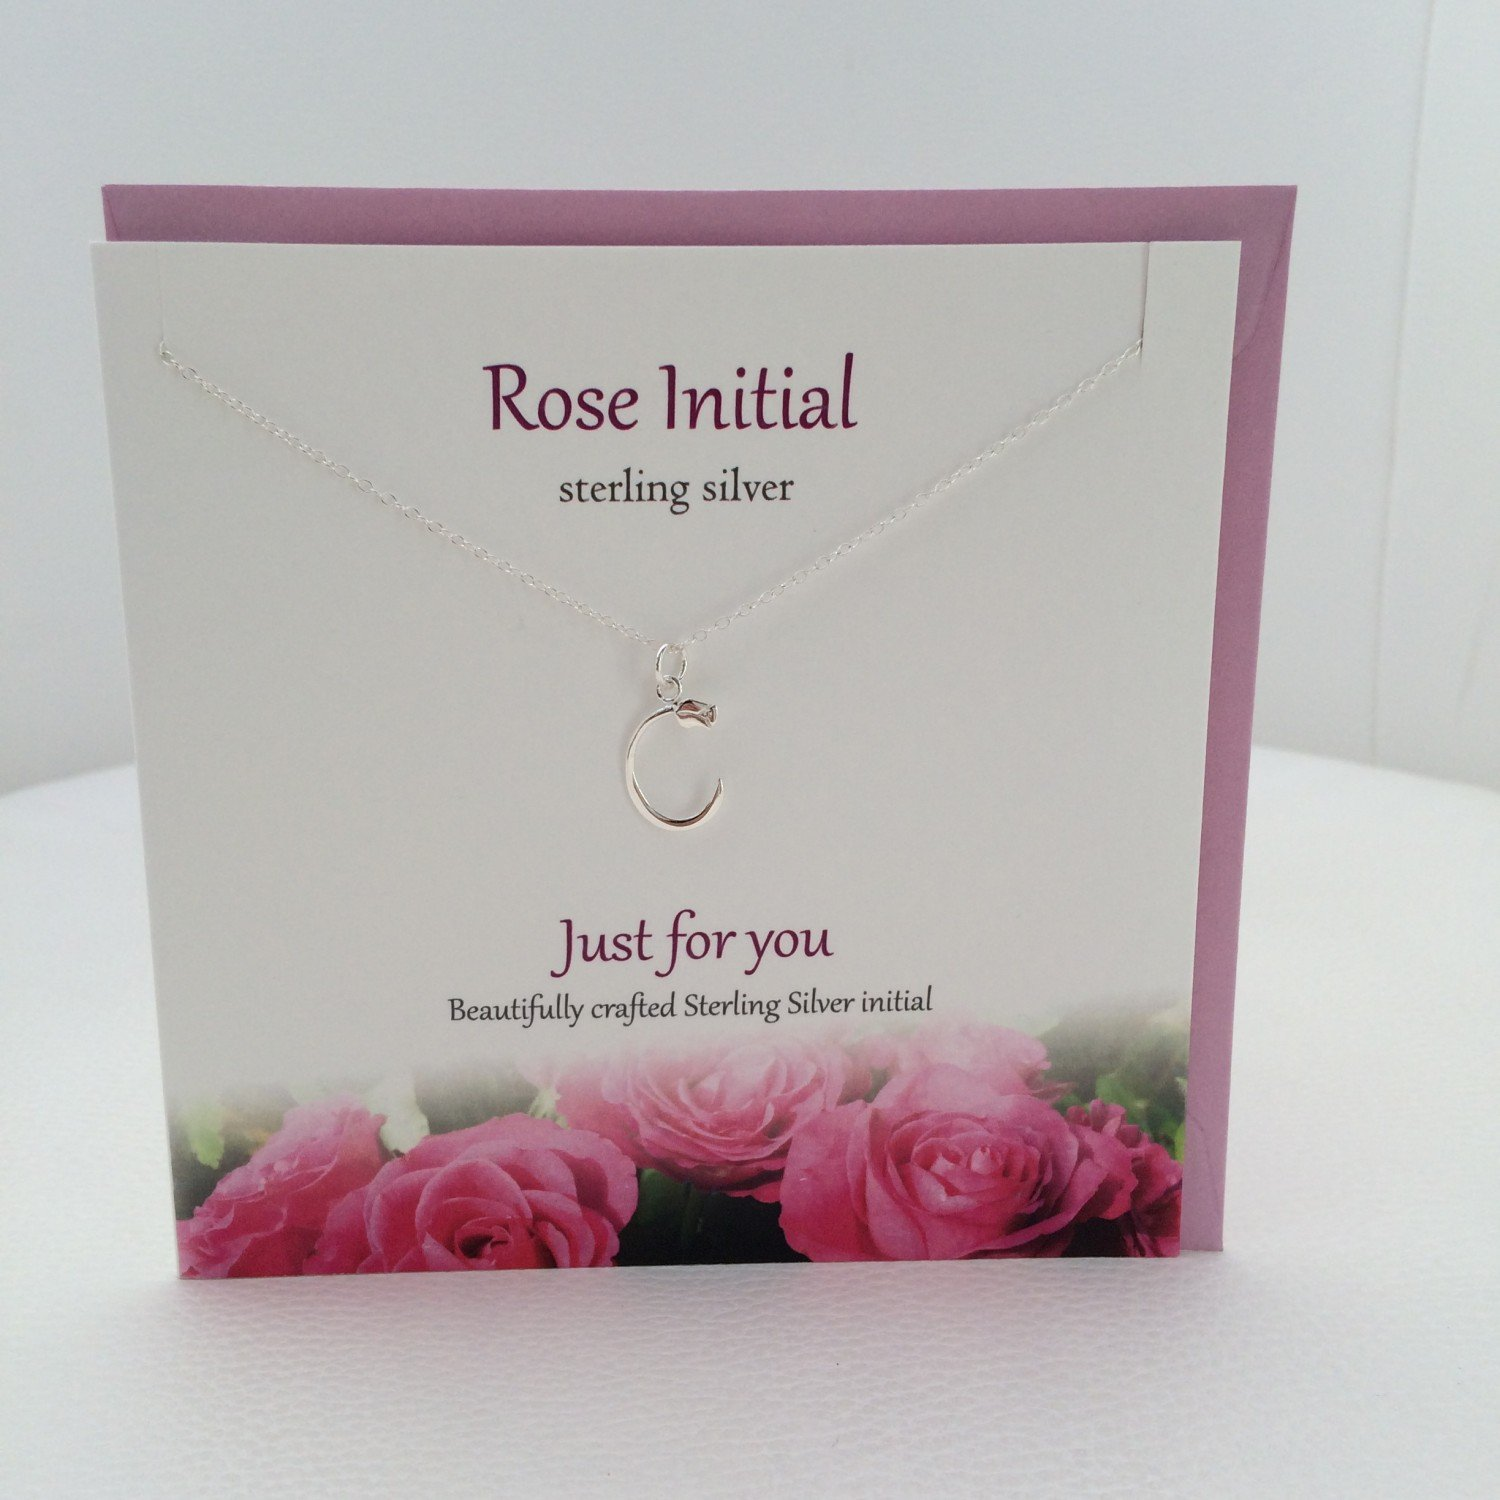 Beautiful Rose On Initial Letter C Initial Rose Sterling Silver Pendant// Necklace By Sterling Effectz